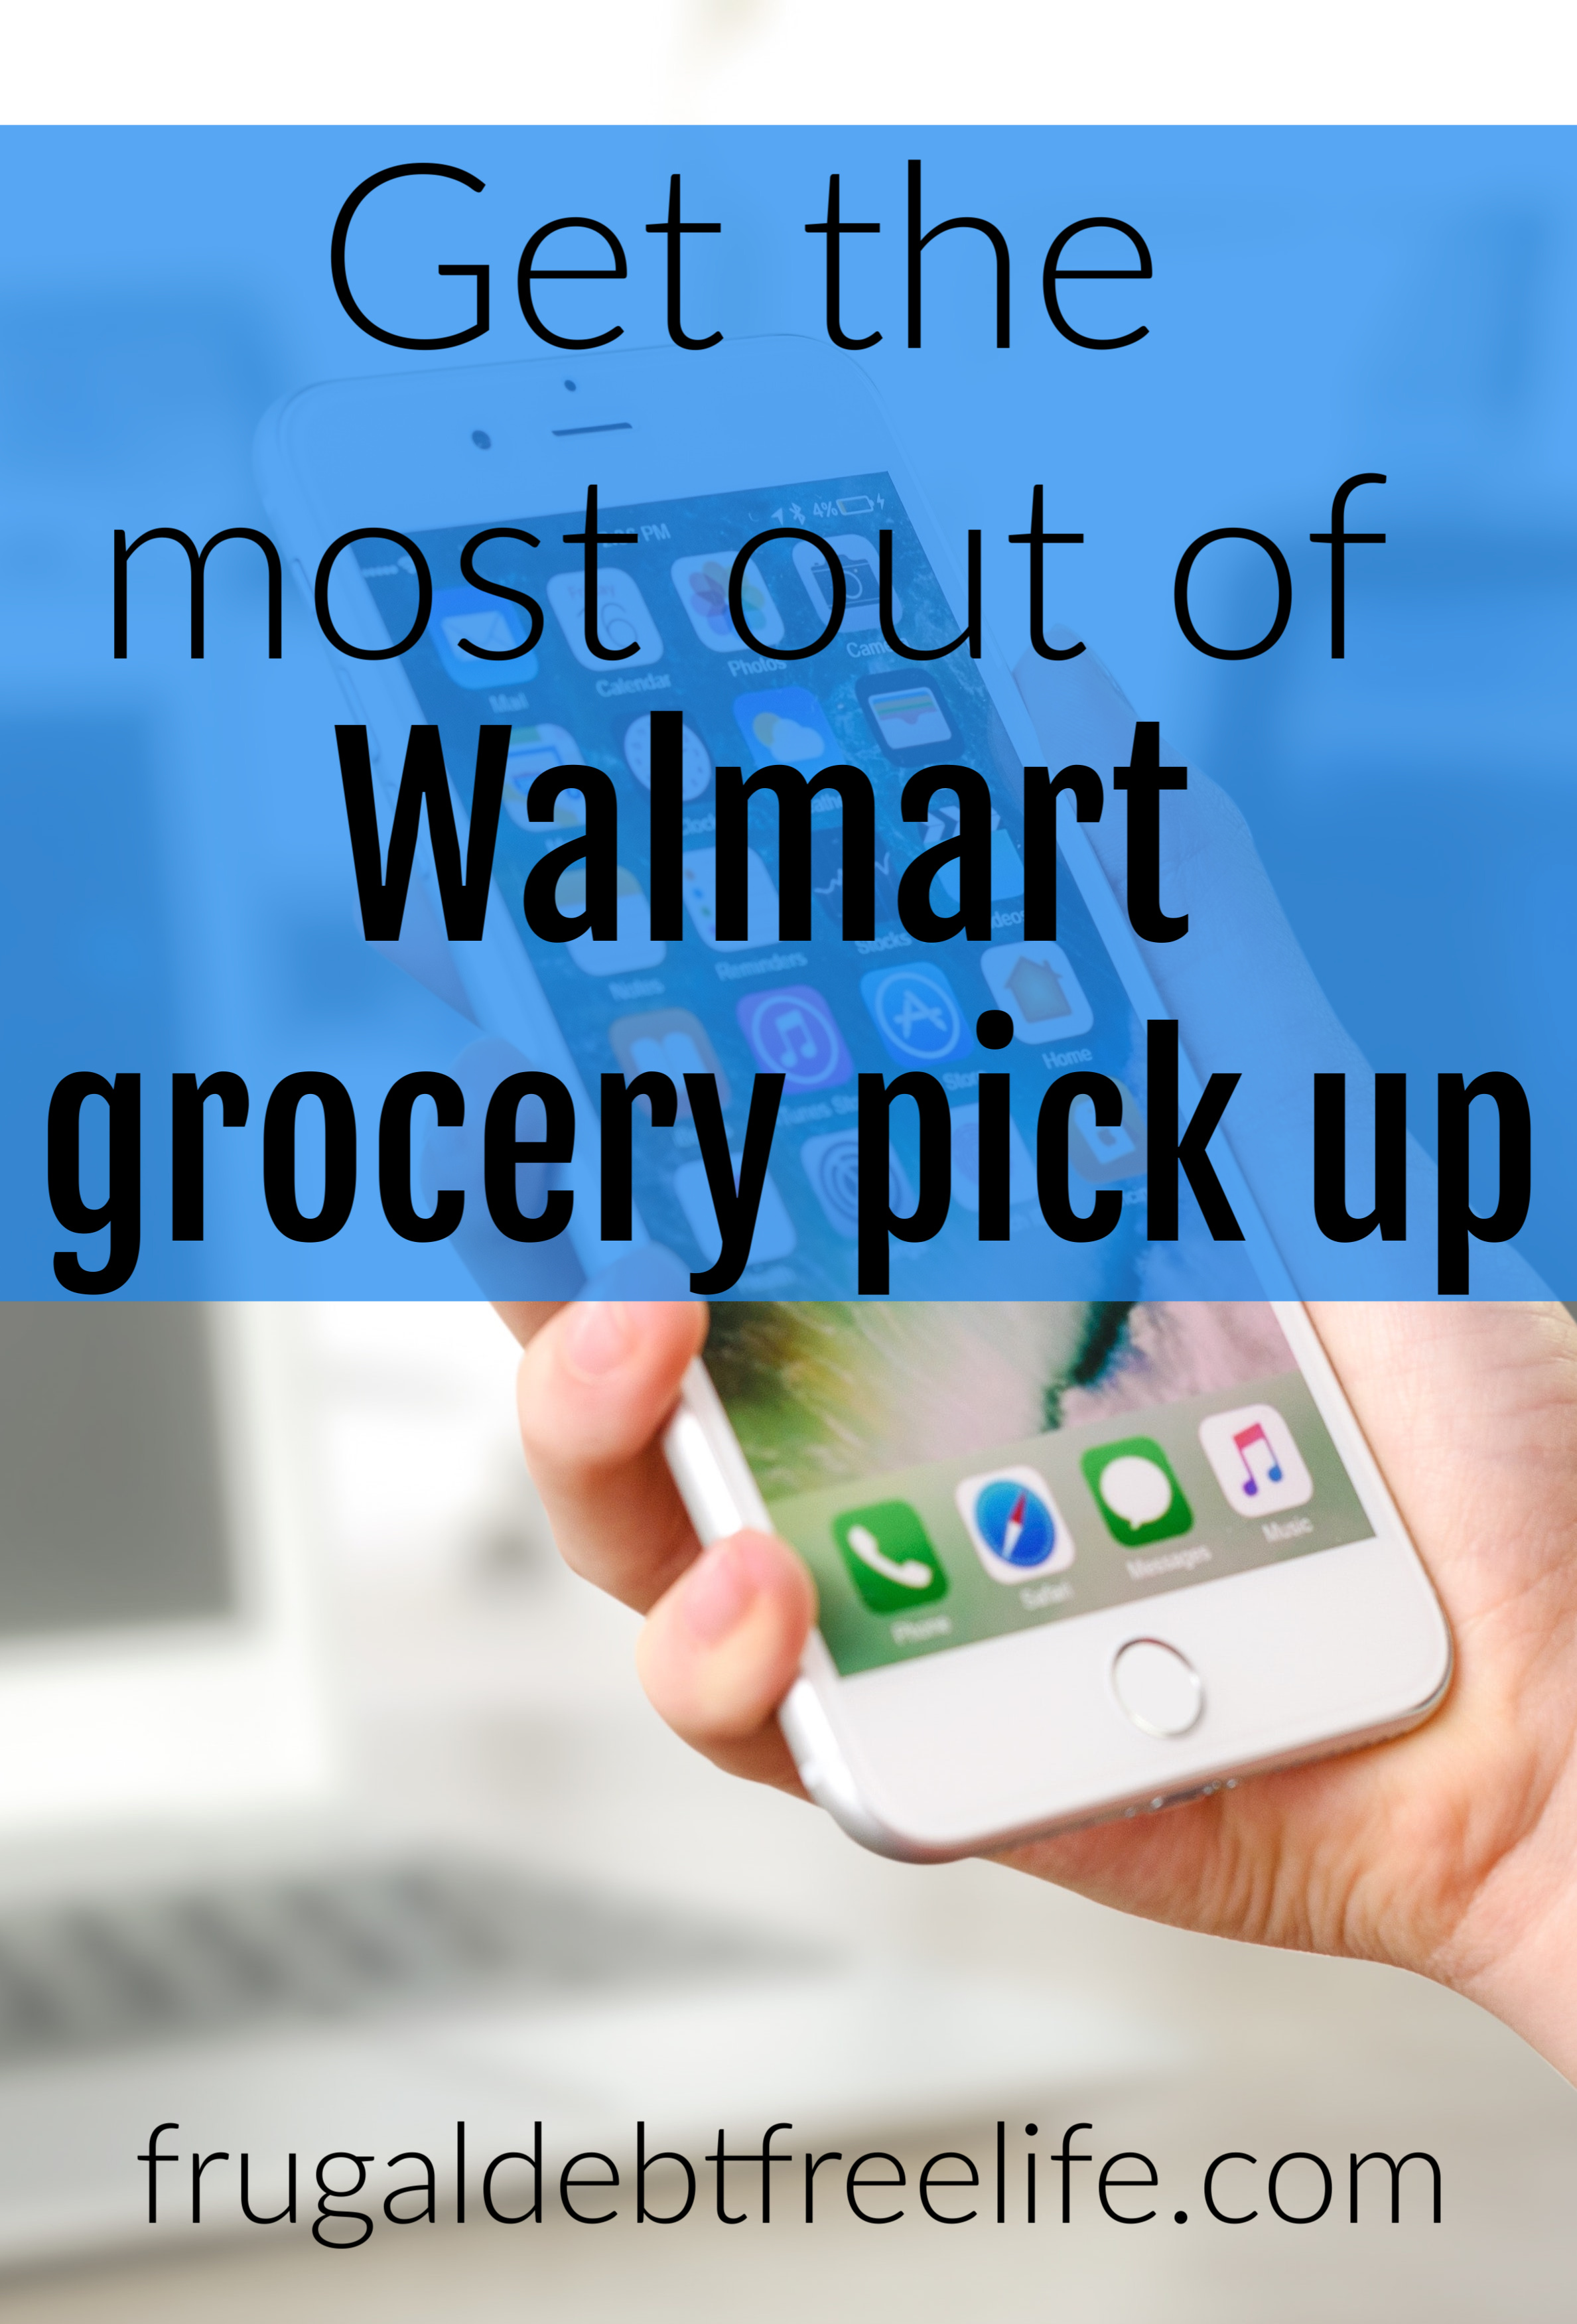 How to get the most out of Walmart grocery pick up PLUS $10 off for existing customers!.jpg